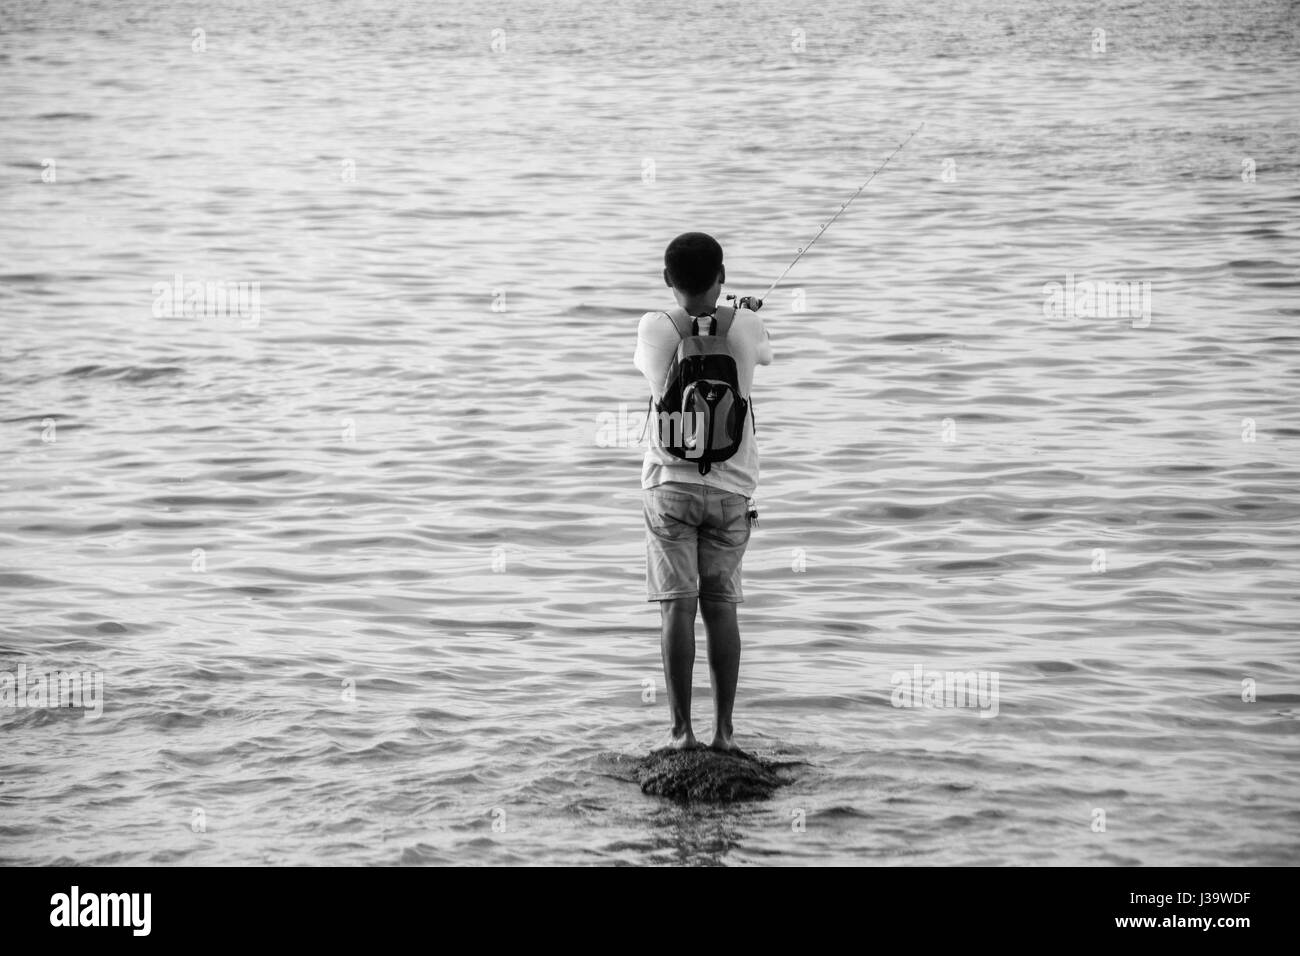 Man casting his fishing rod into the sea, Stock Photo